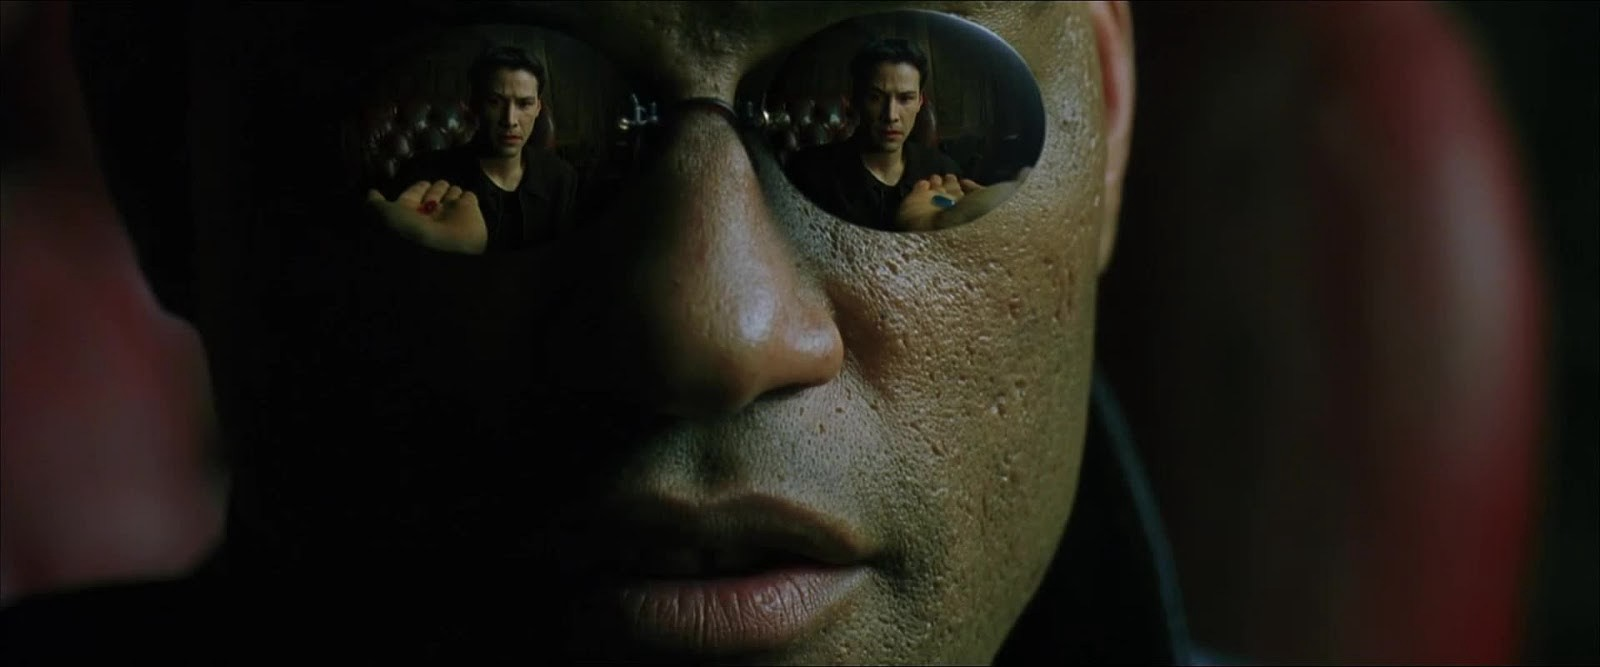 Cyberpunk and mirror glasses: reflections in fashion and culture